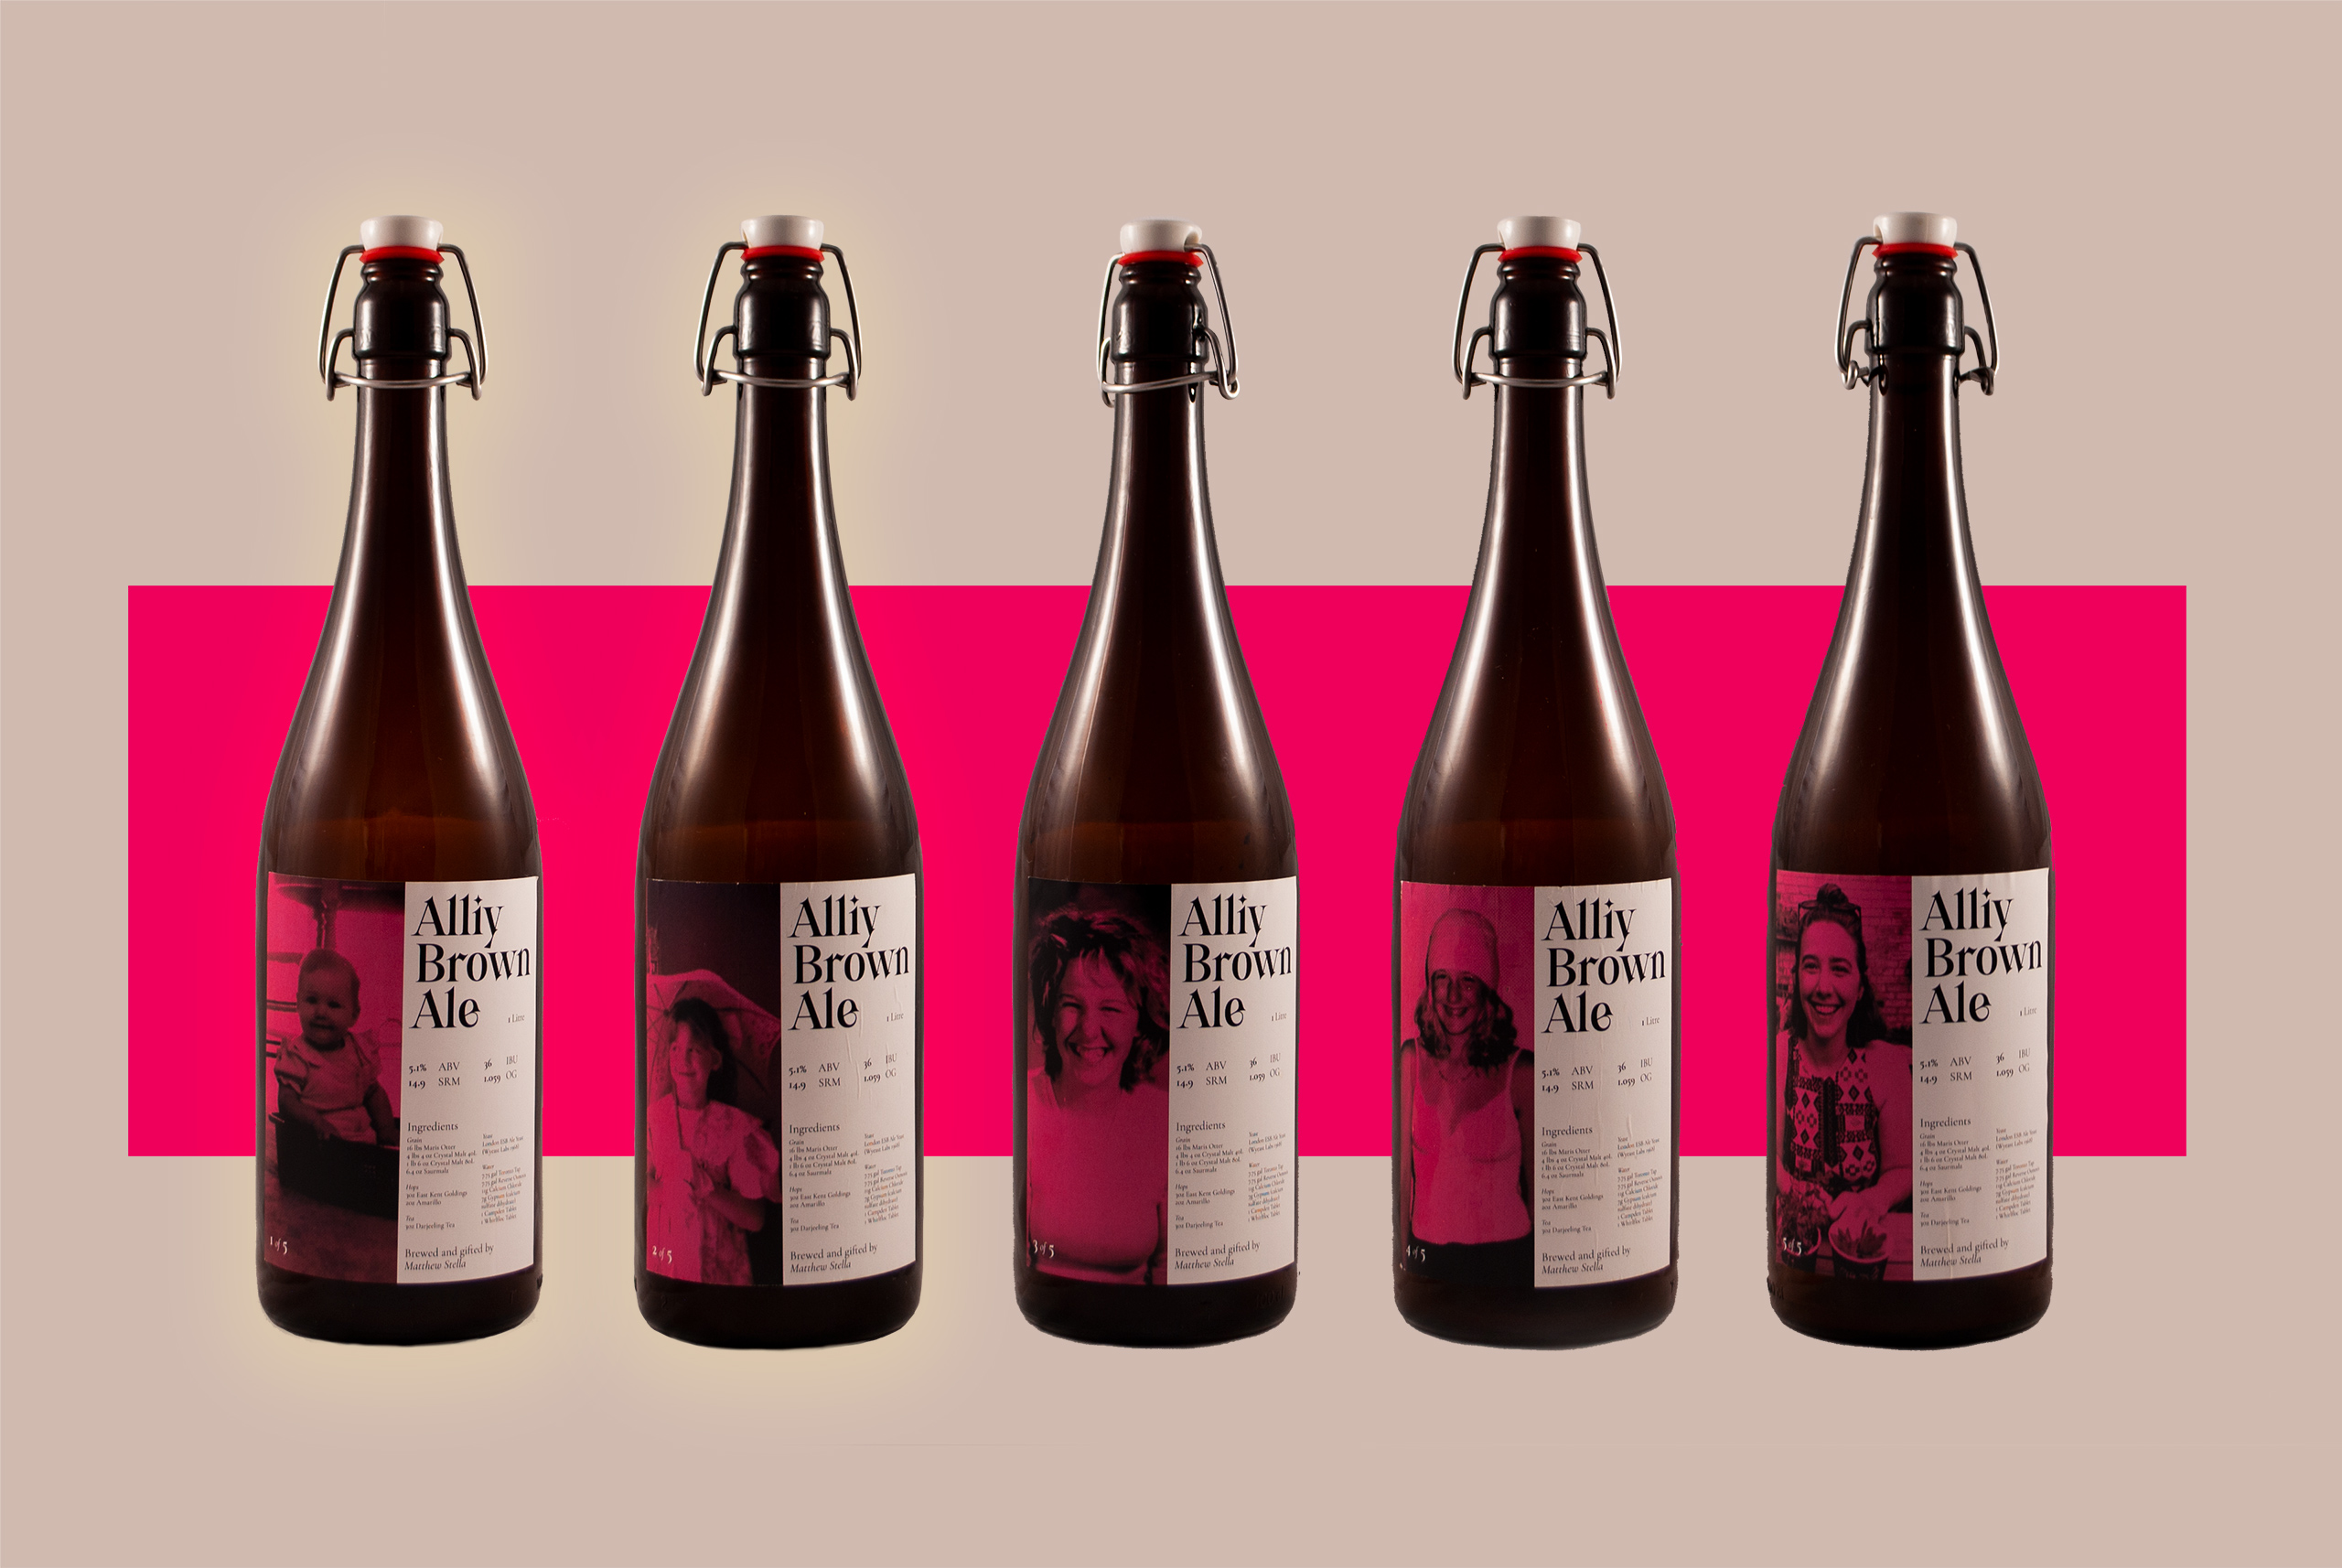 Alliy Brown Ale Packaging